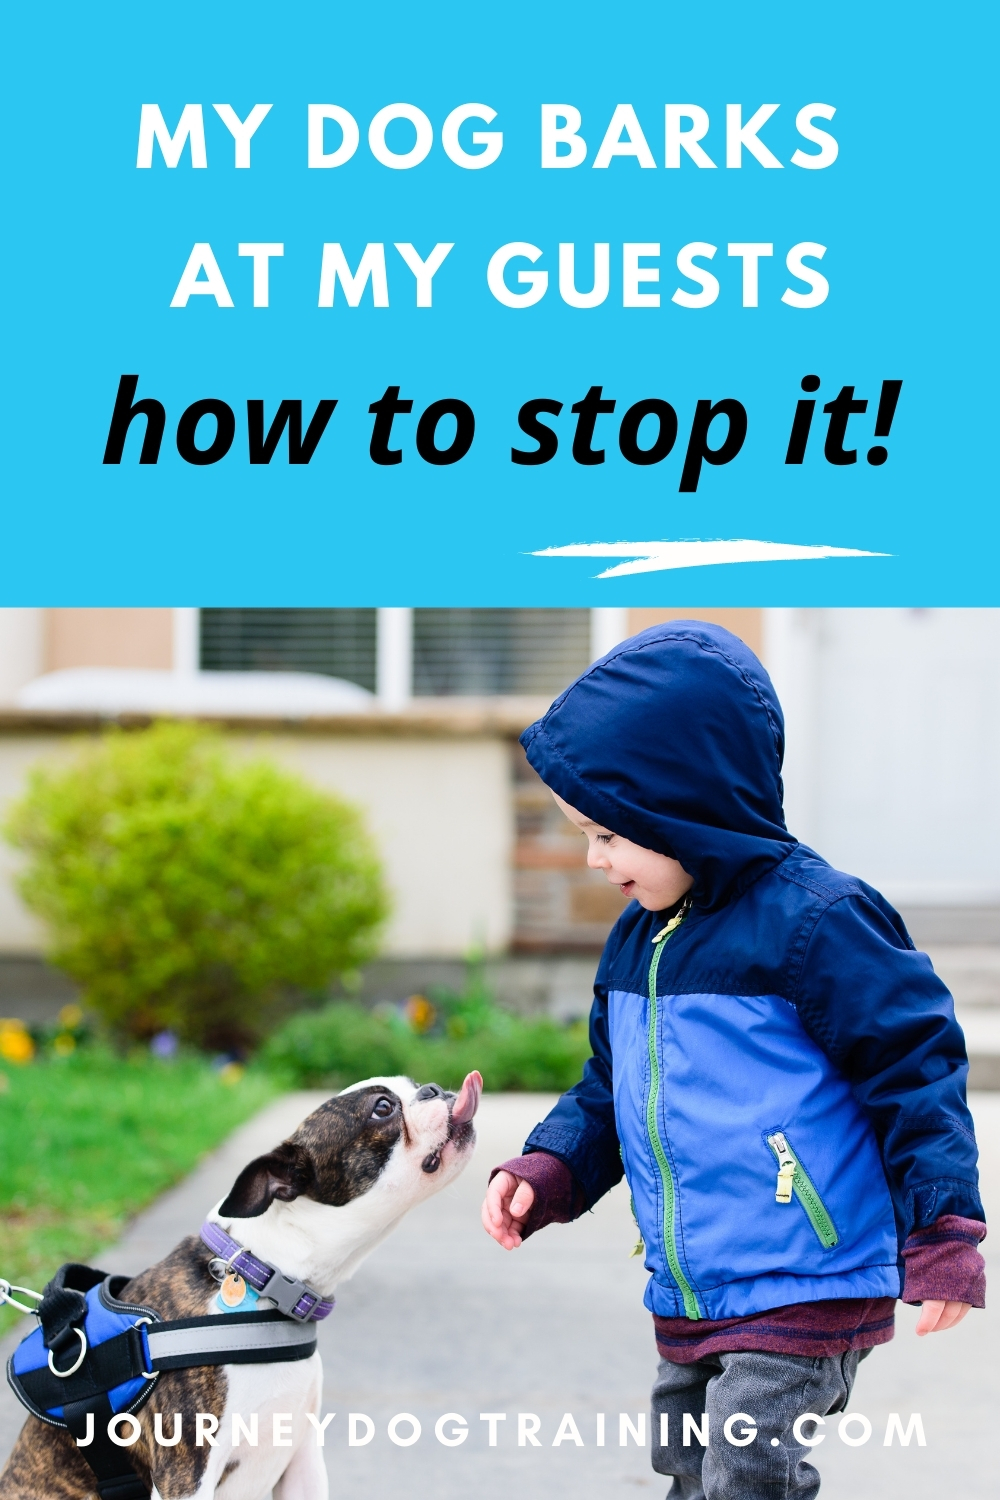 my dog barks at my guests and how to stop it | journeydogtraining.com